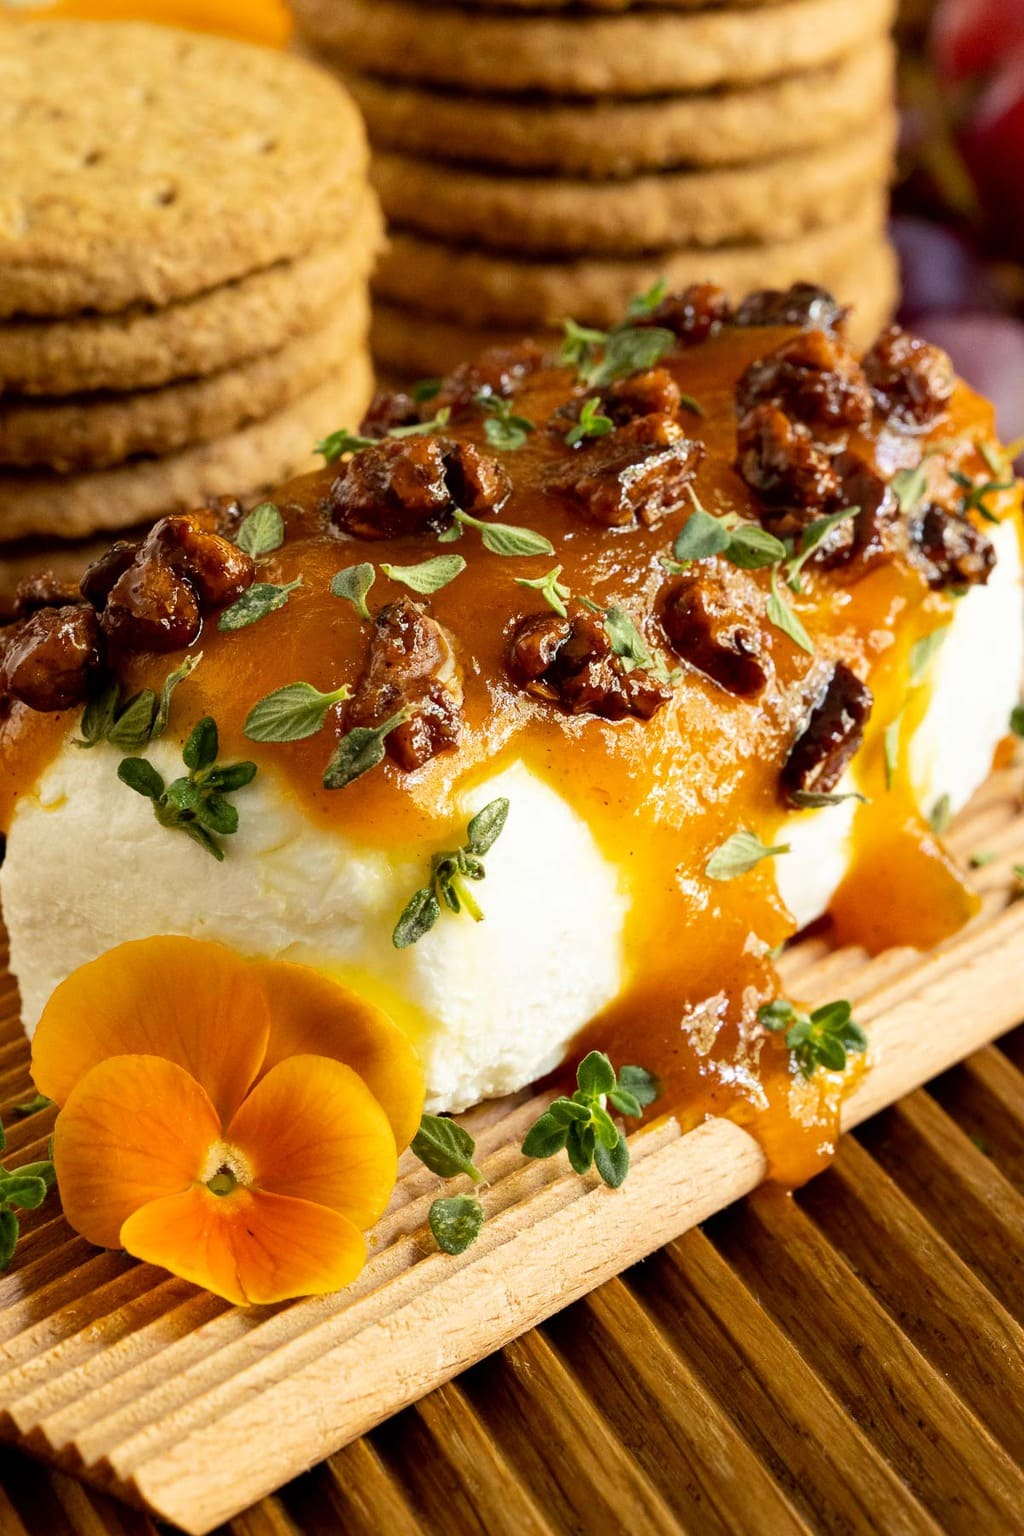 Vertical closeup photo of a log of goat cheese with Pumpkin Jam (Confiture De Citrouille), fresh thyme leaves and candied pecans spread on top.